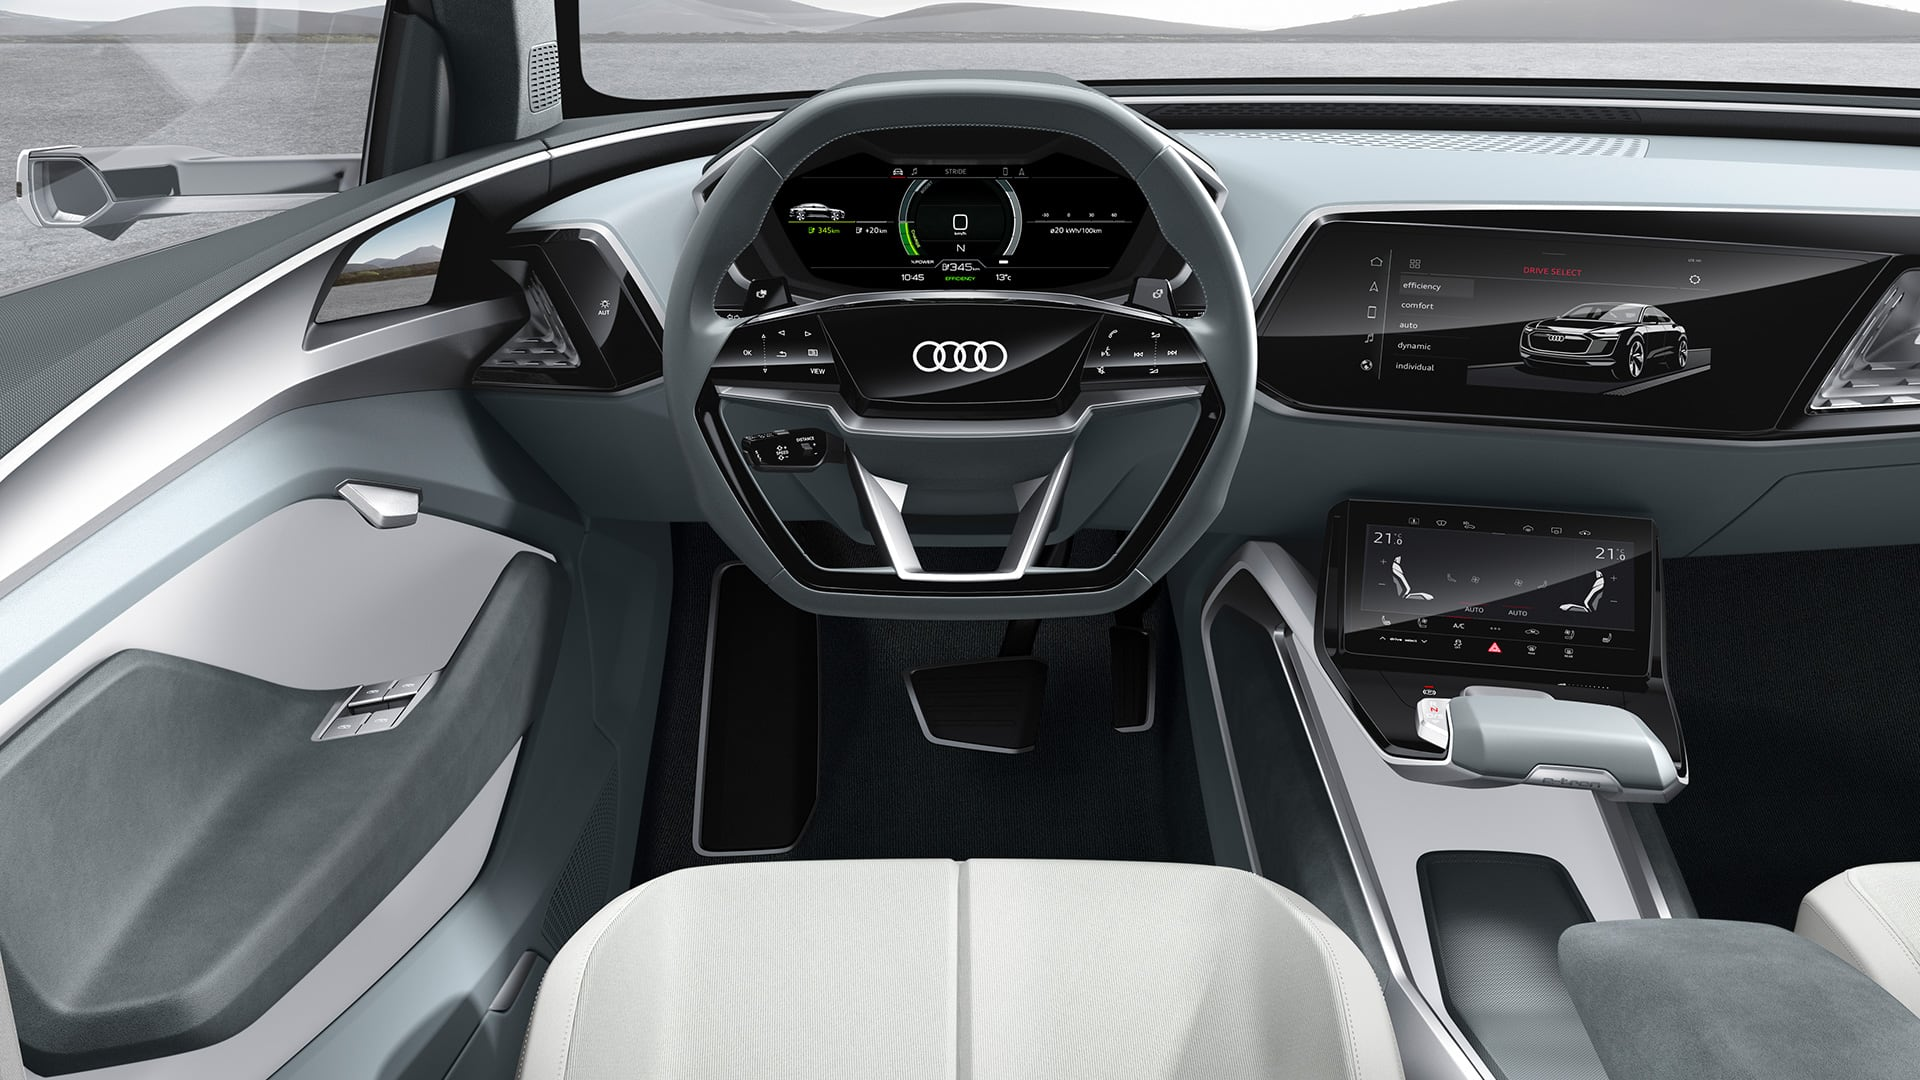 audi e tron concepts audi deutschland. Black Bedroom Furniture Sets. Home Design Ideas